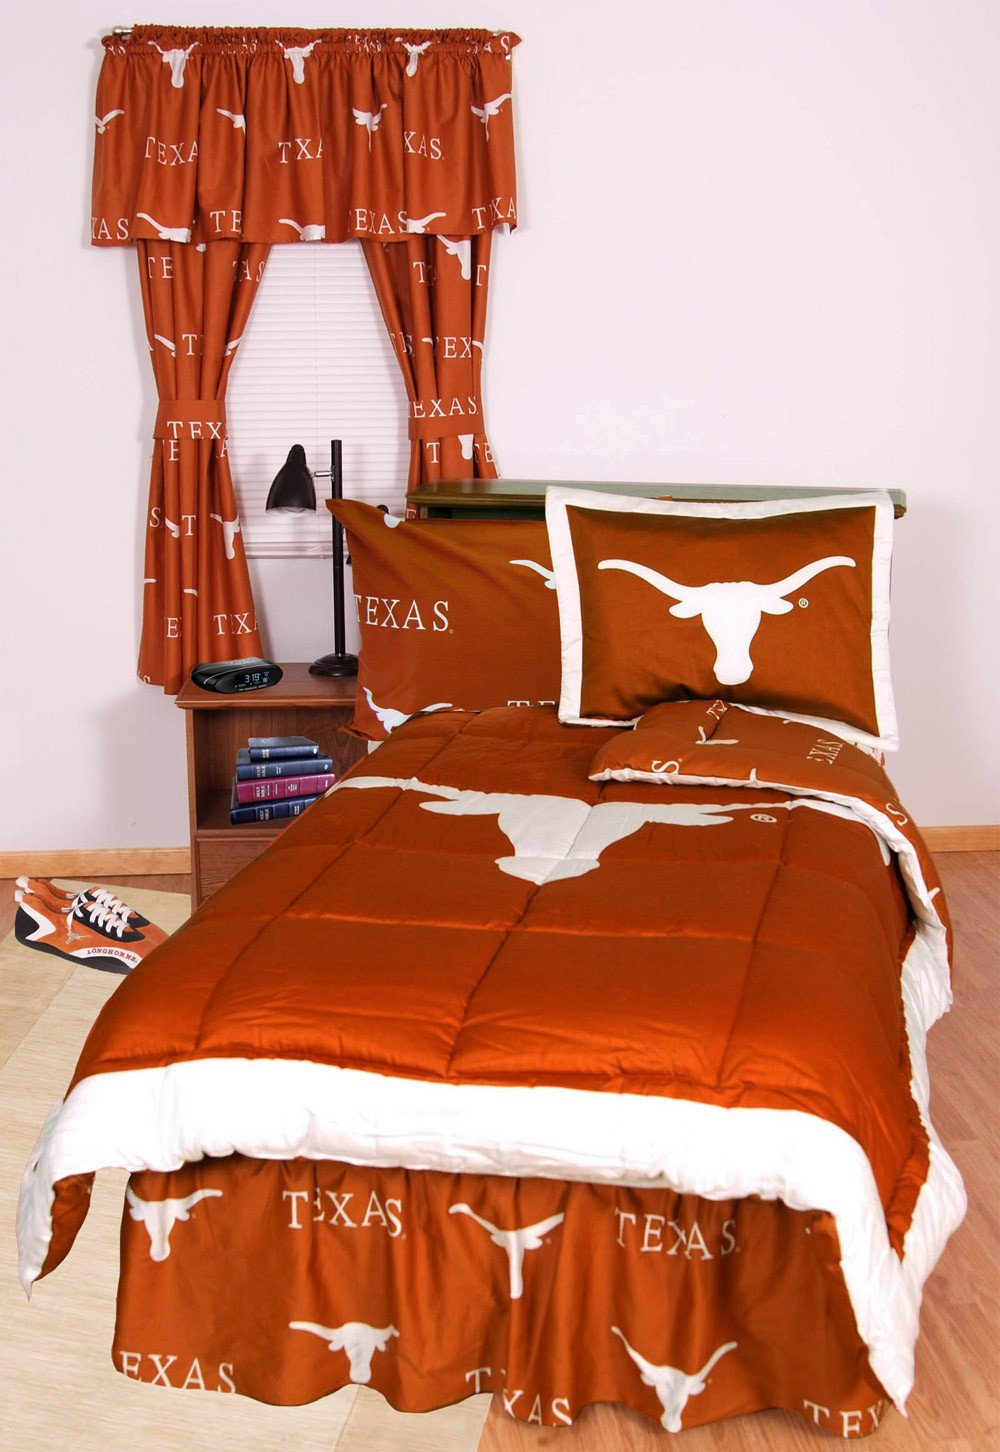 College | Sheet | Texas | Cover | Color | Full | Team | Bed | Bag